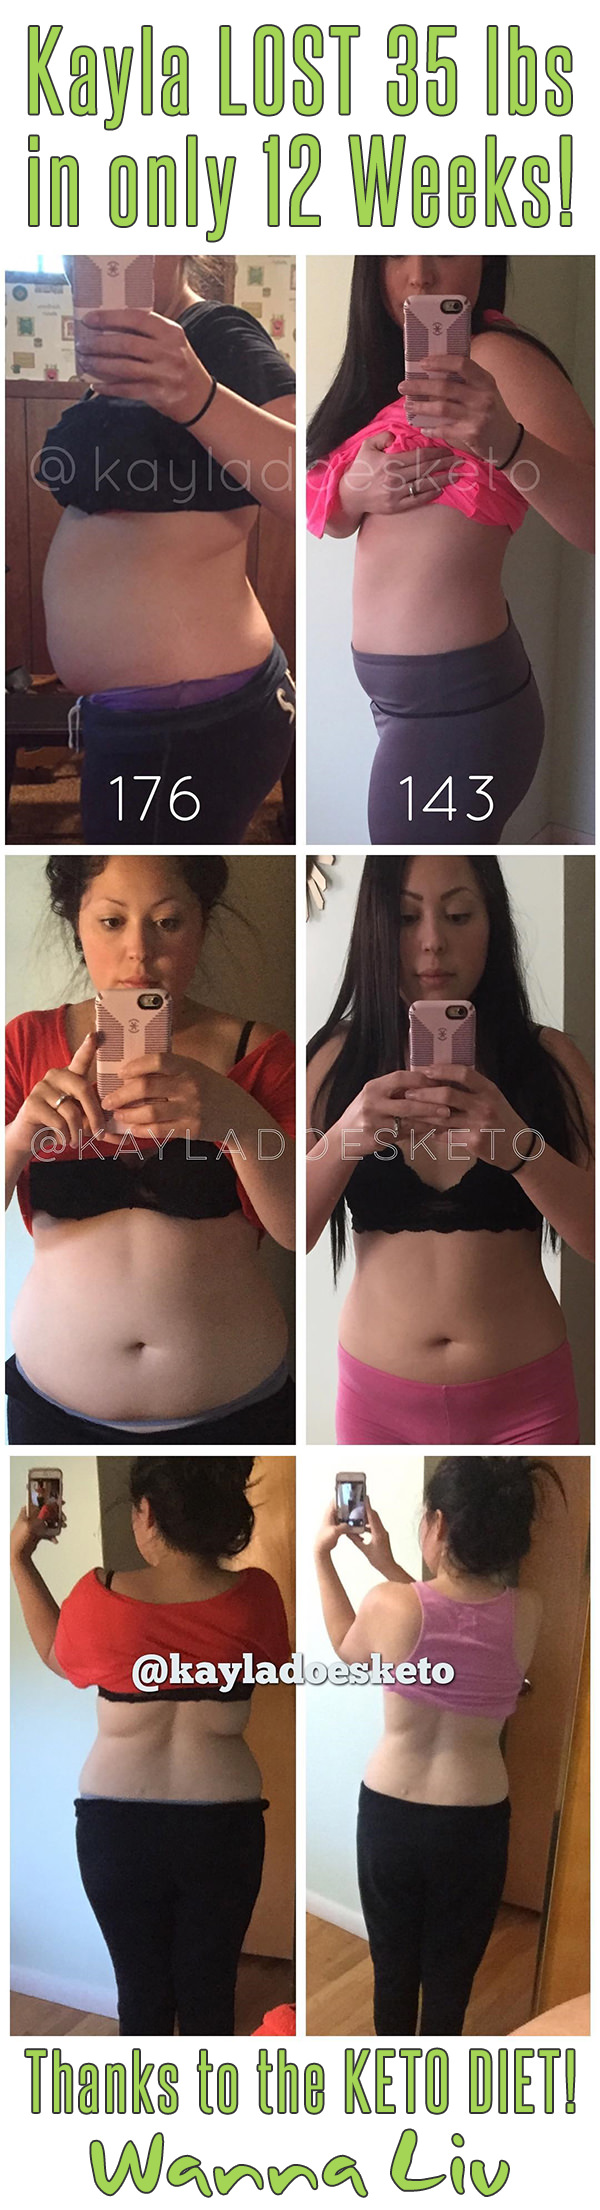 Kayla LOST 35 lbs in only 12 Weeks! Thanks to the KETO DIET! - Keto Success Stories #1 via Wanna Liv